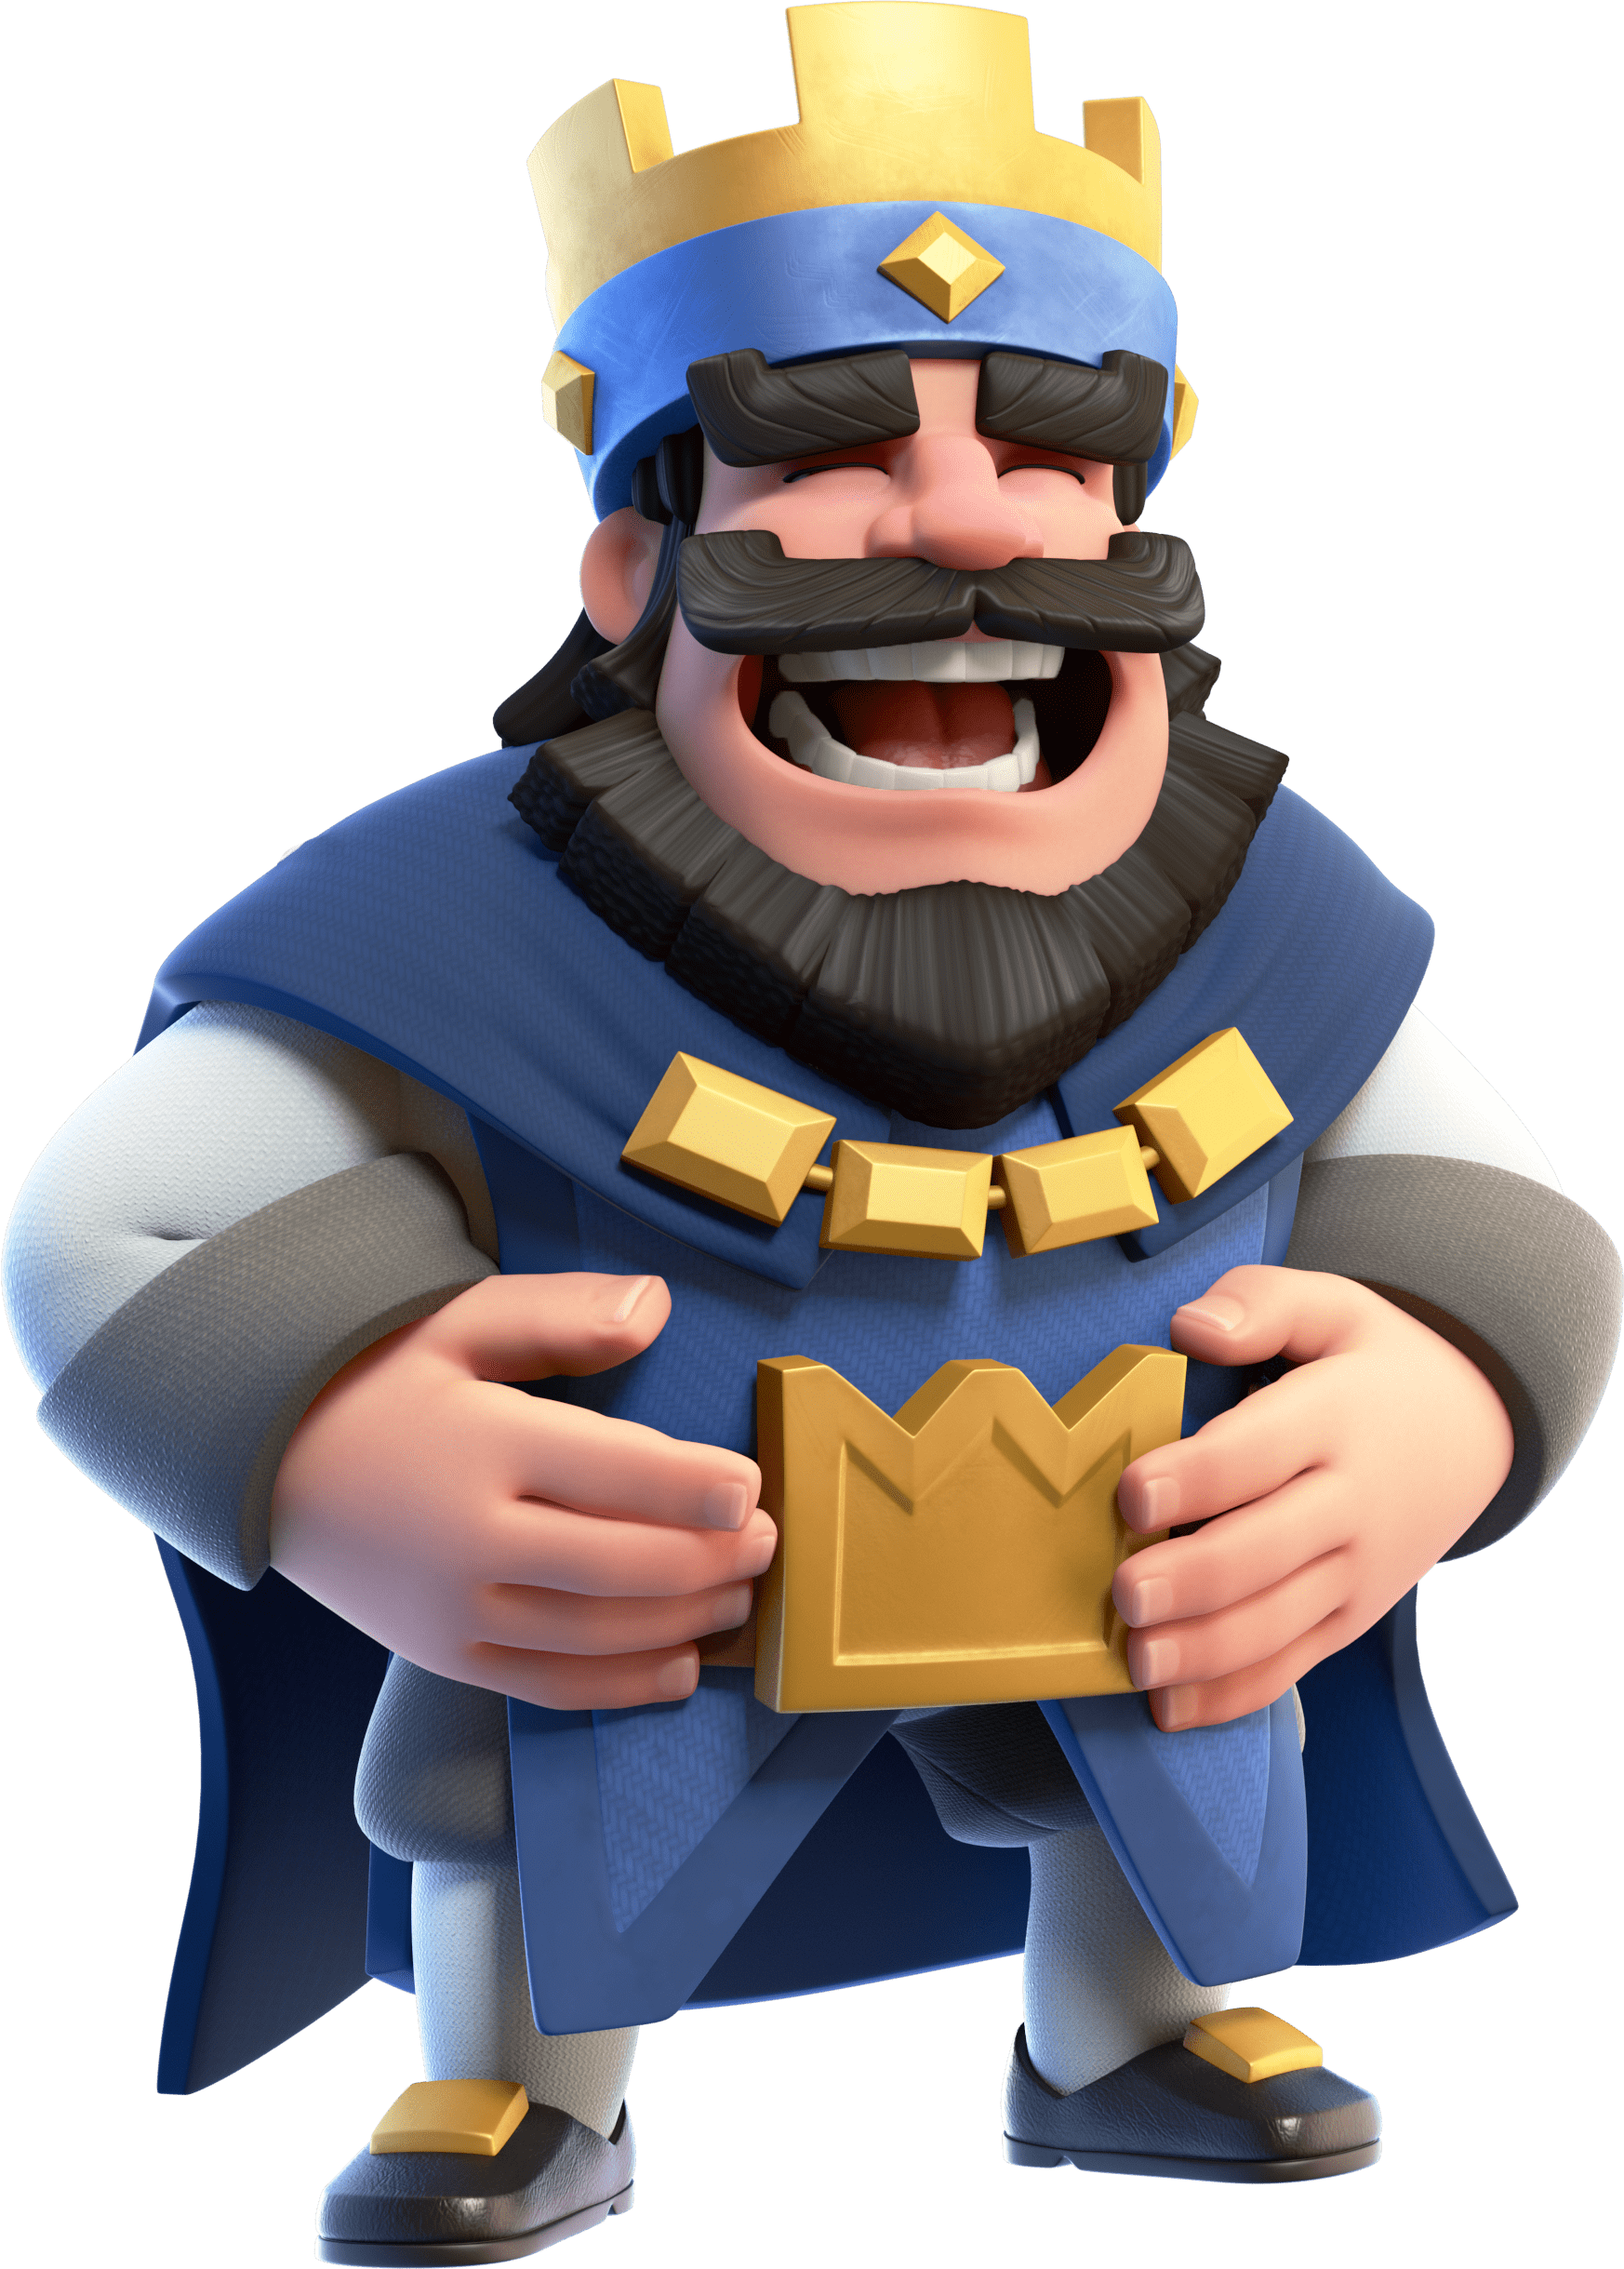 Clash Royale Prince transparent PNG.